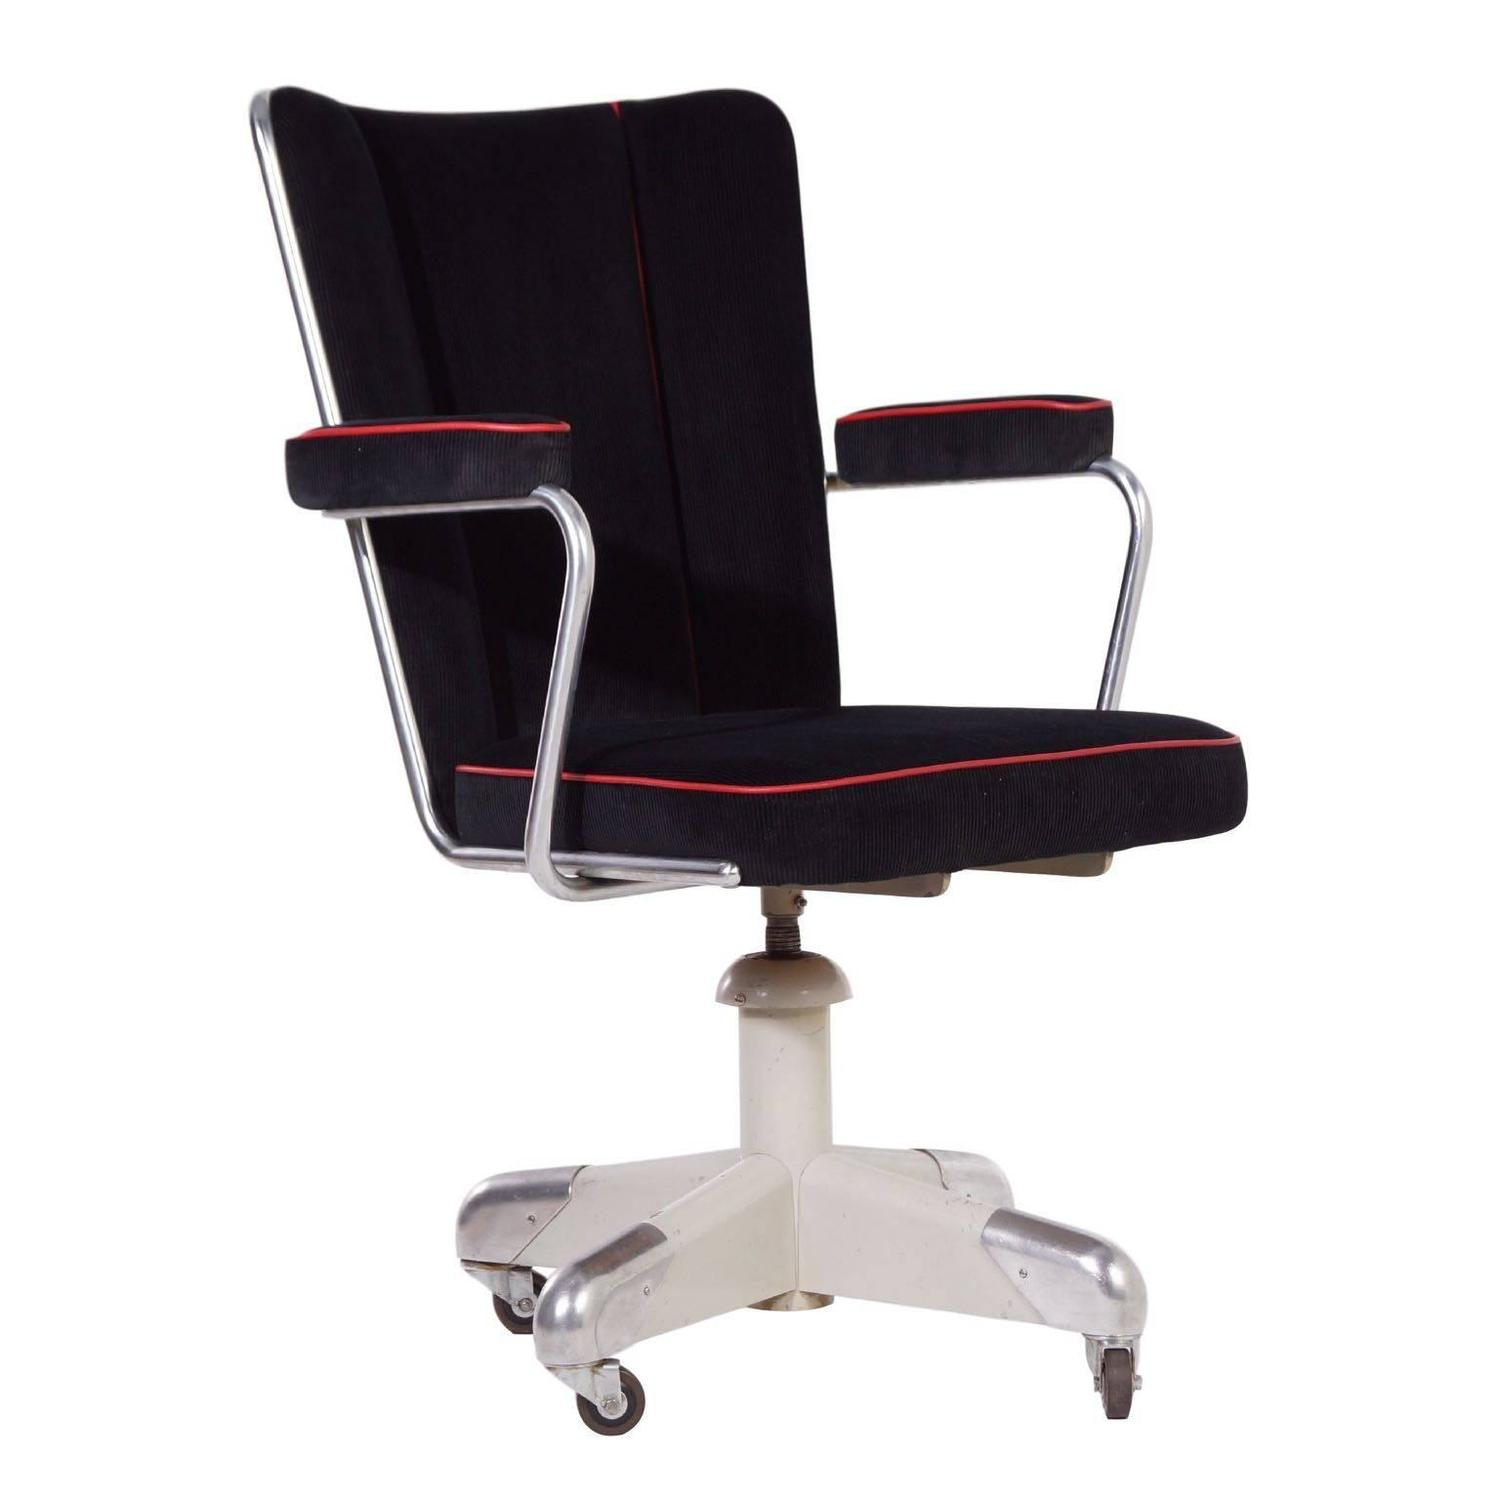 357 PQ President Desk Chair by Ch. Hoffmann for Gispen, circa 1953 For Sale at 1stdibs